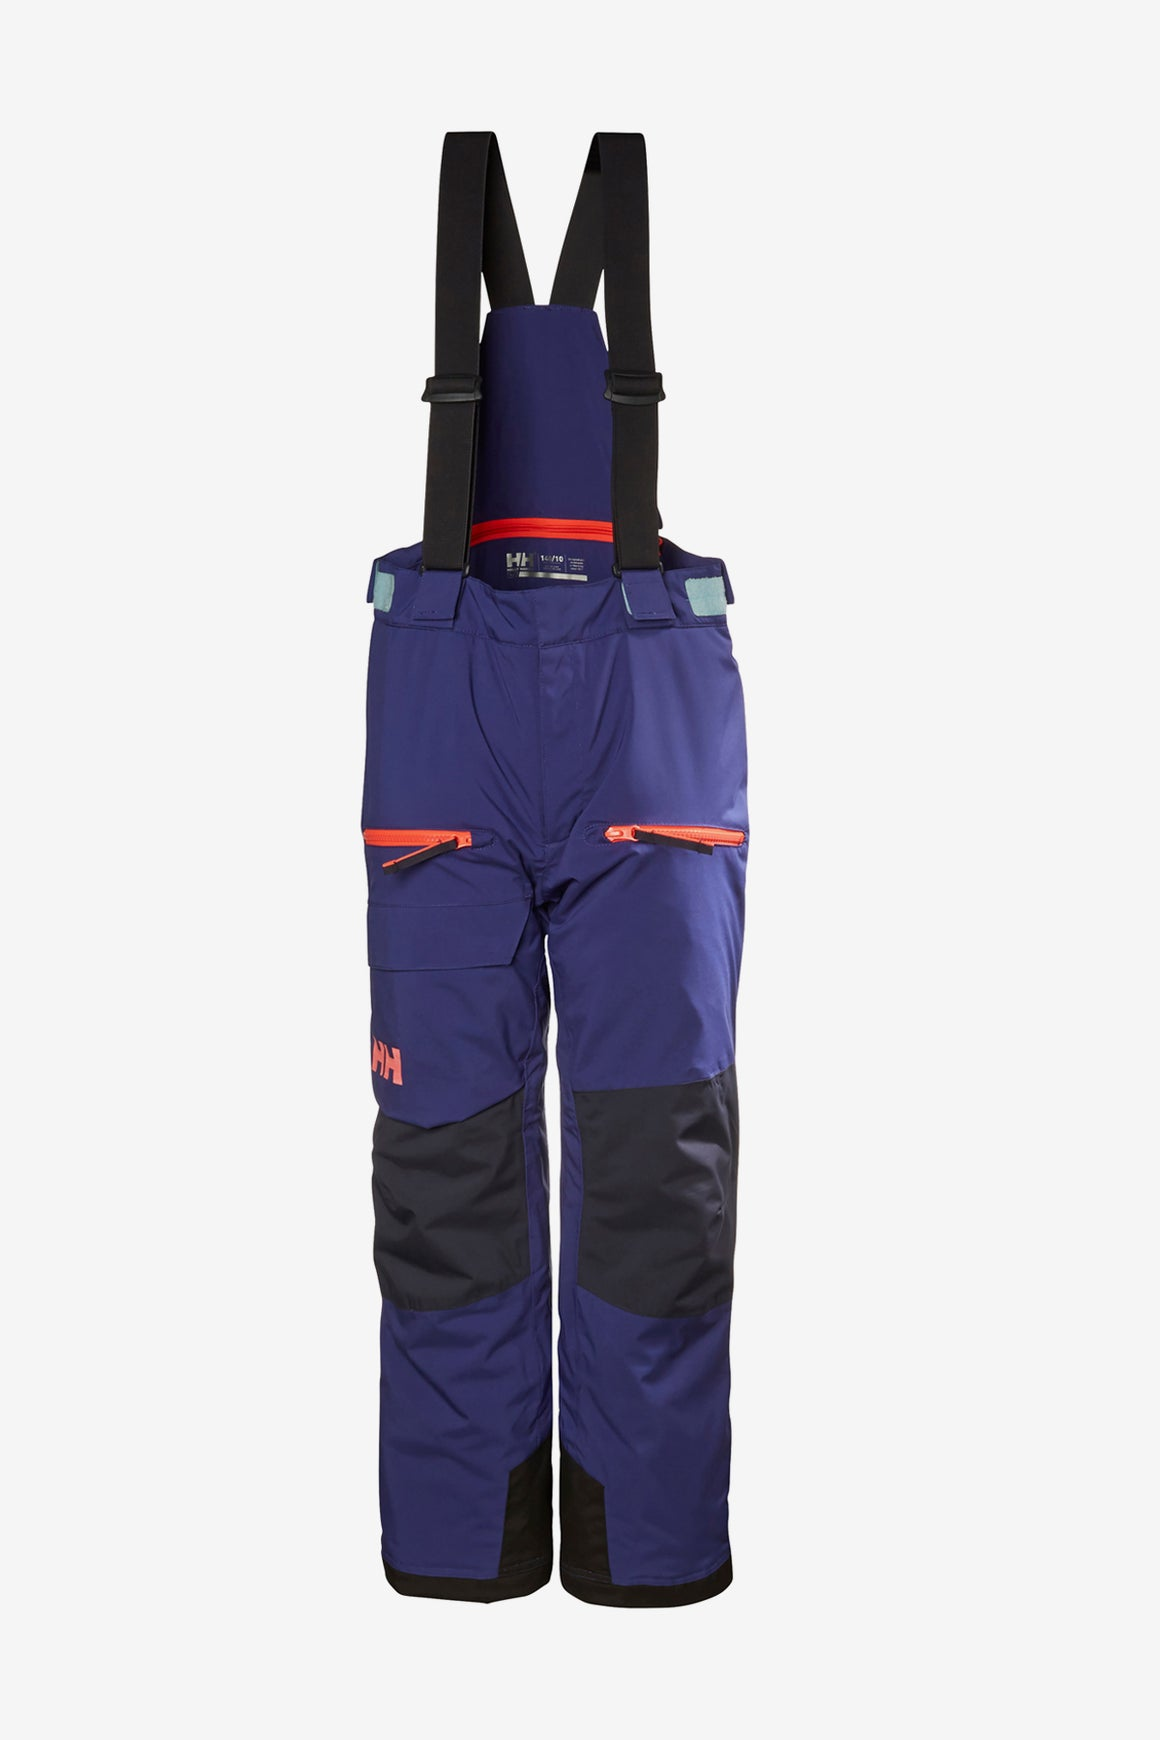 Helly Hansen Jr Powder Snow Pant - Lavender